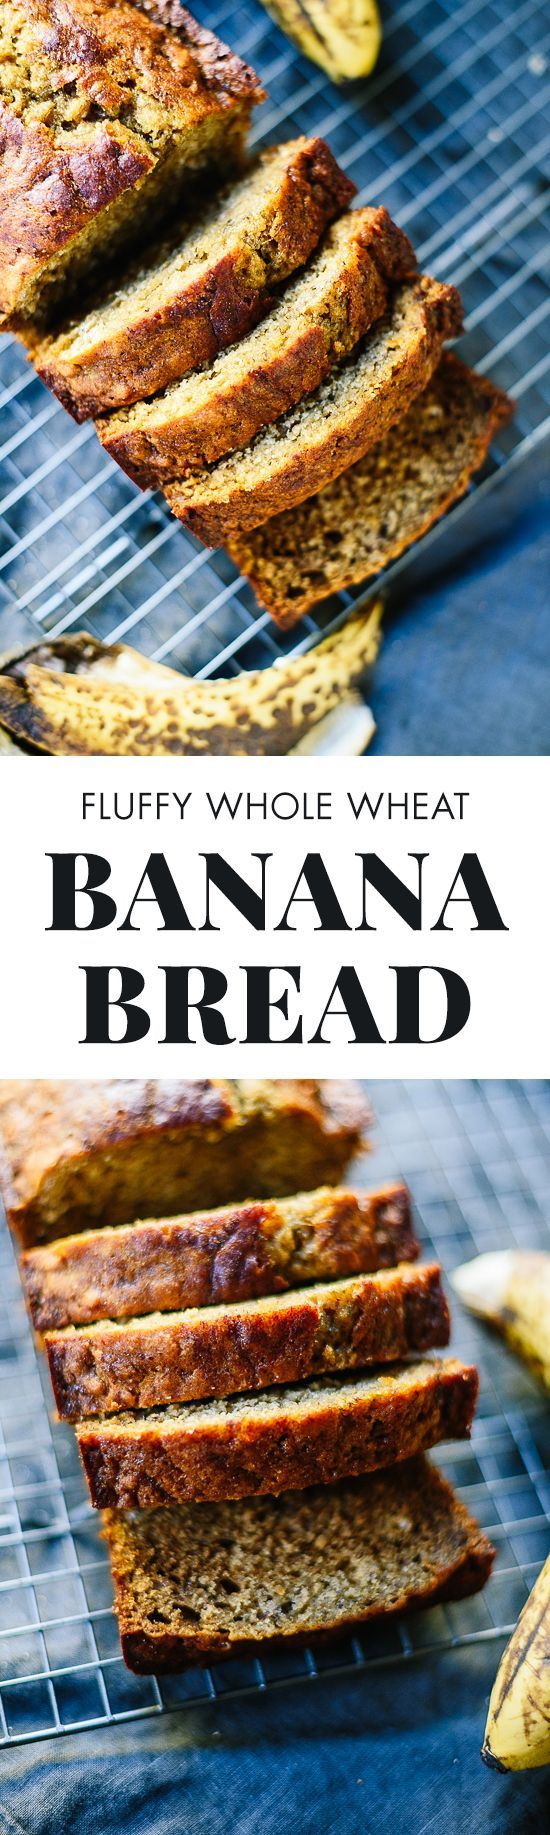 Cookie And Kate Healthy Banana Bread  518 best hearty breakfasts images on Pinterest